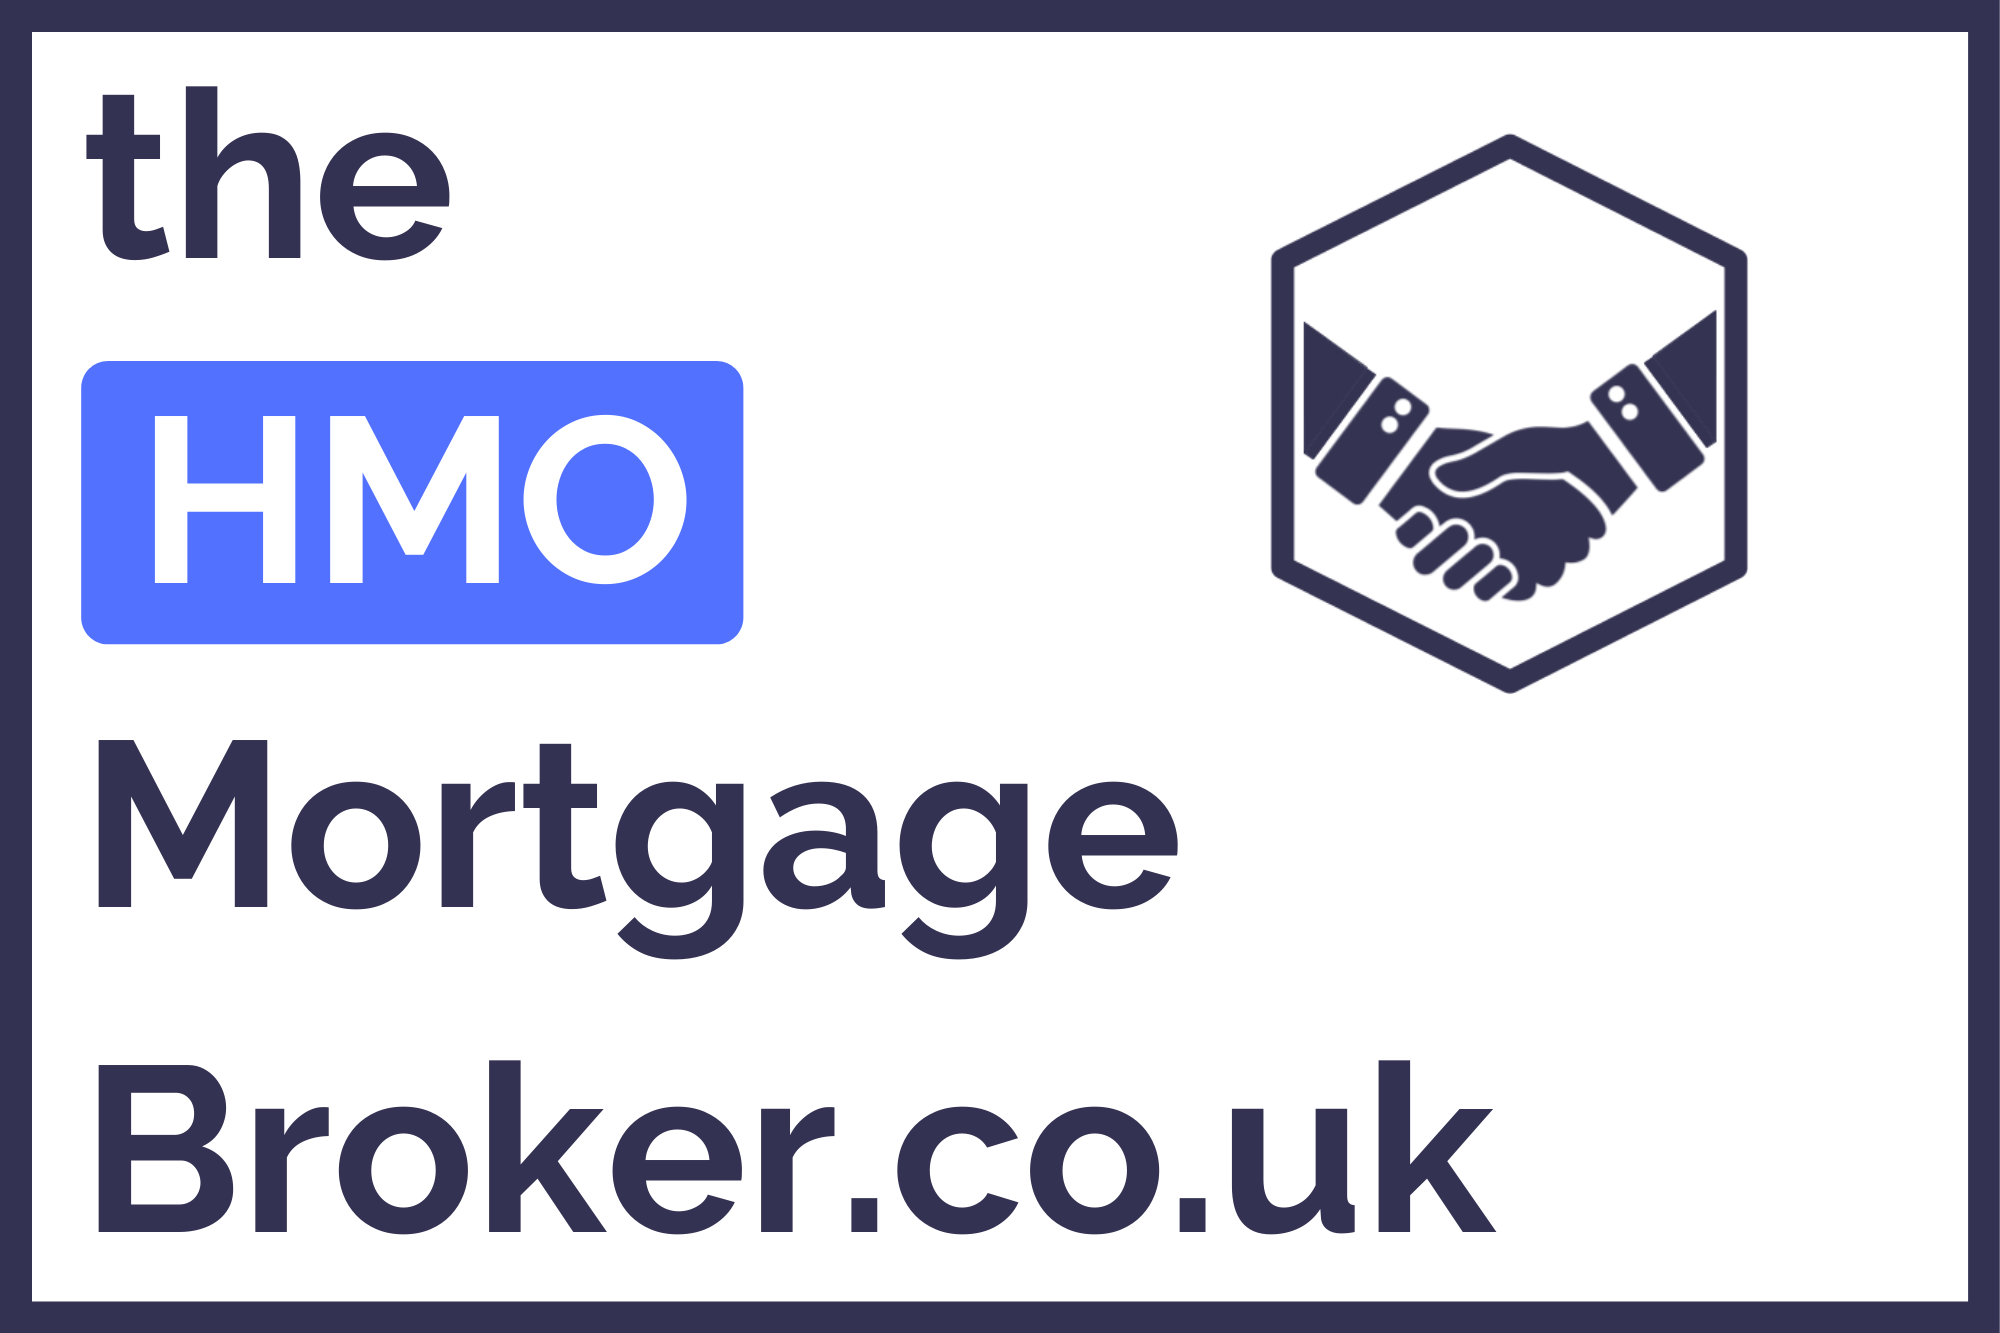 the HMO Mortgage Broker